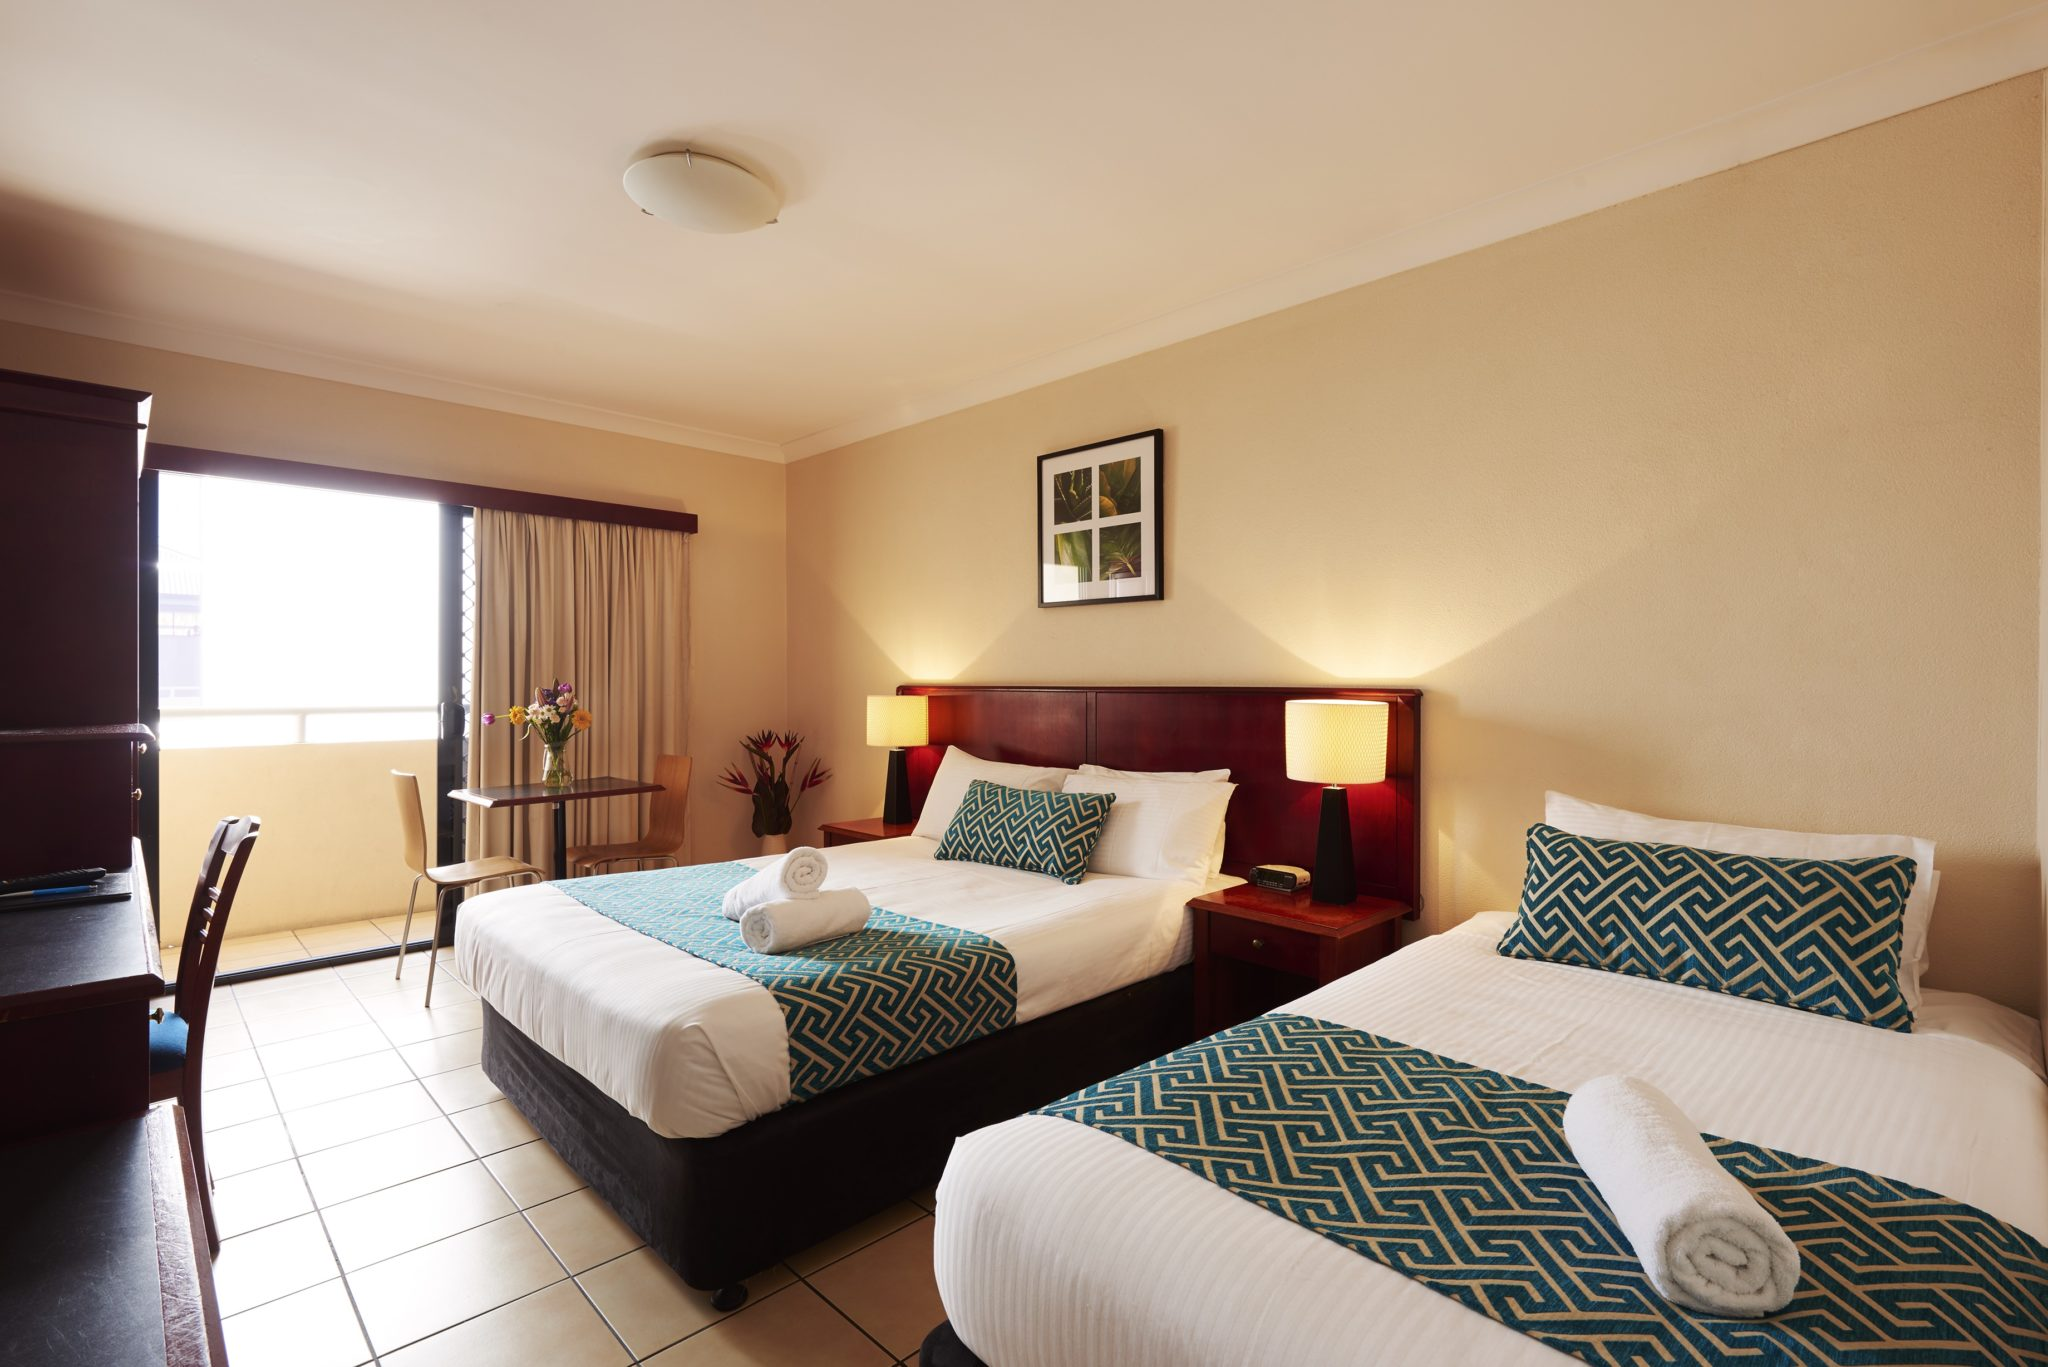 accommodation - Rockhampton5625